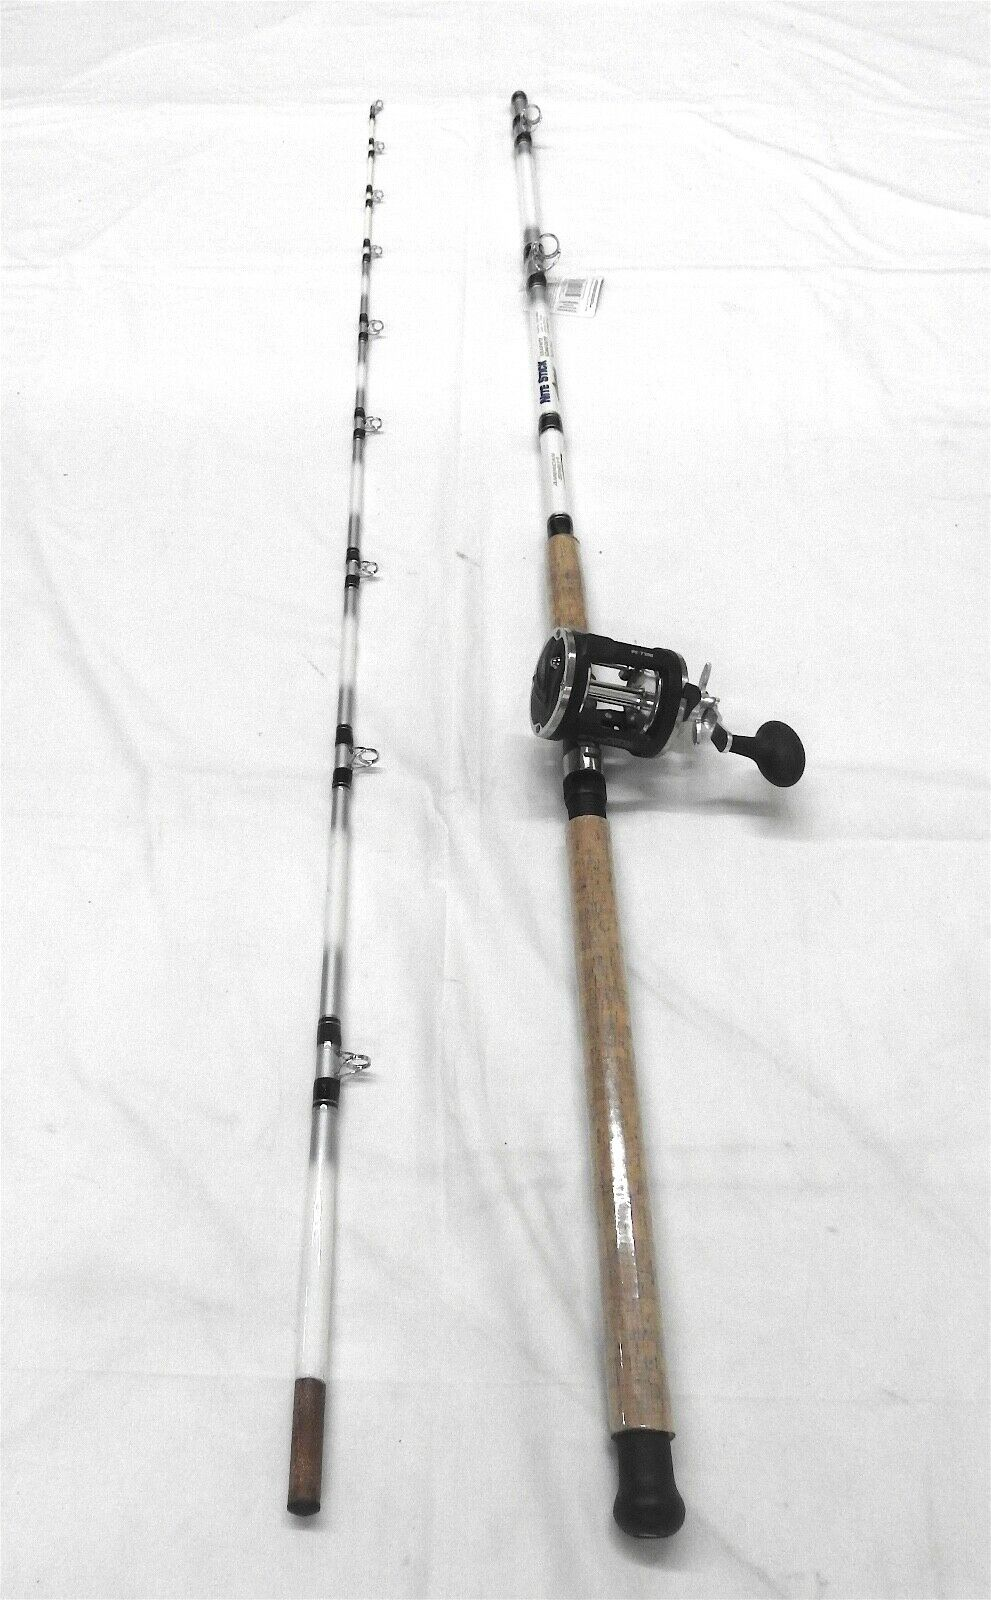 10' 2PC Pro Nite Stick Catfish Casting Combo Cork Handle Glow Tip   3BB Reel